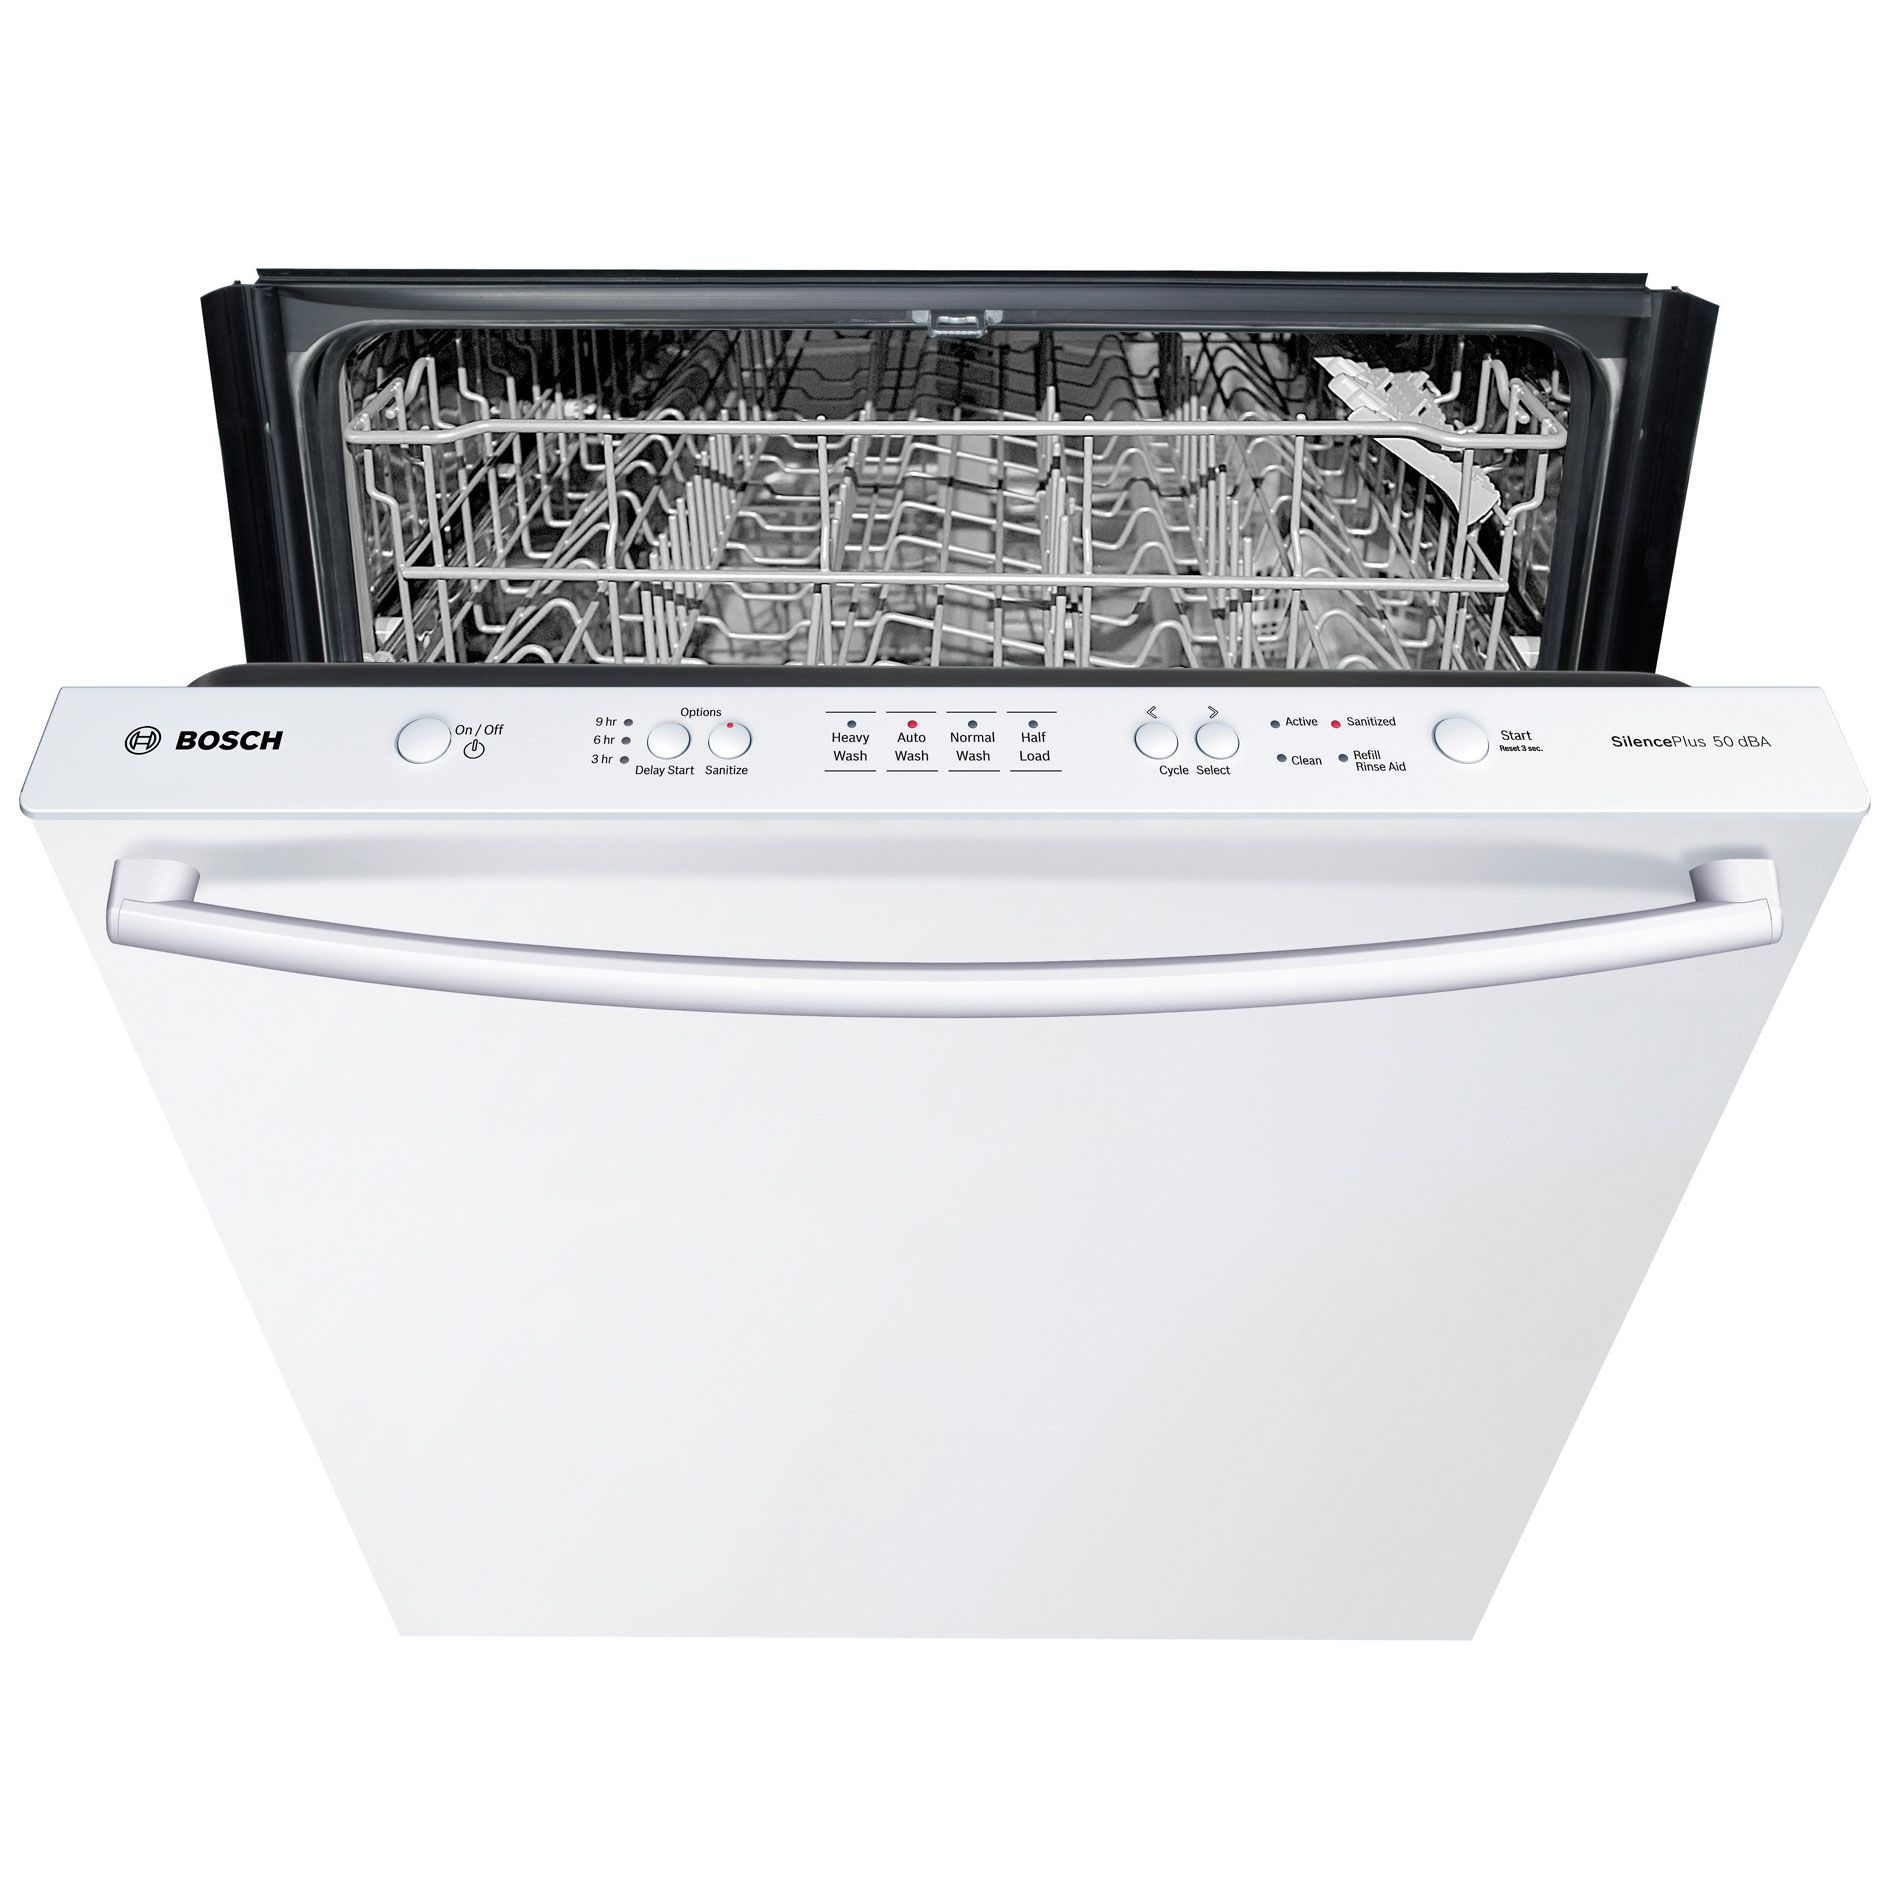 "Bosch 24"" Built-In Dishwasher  White"